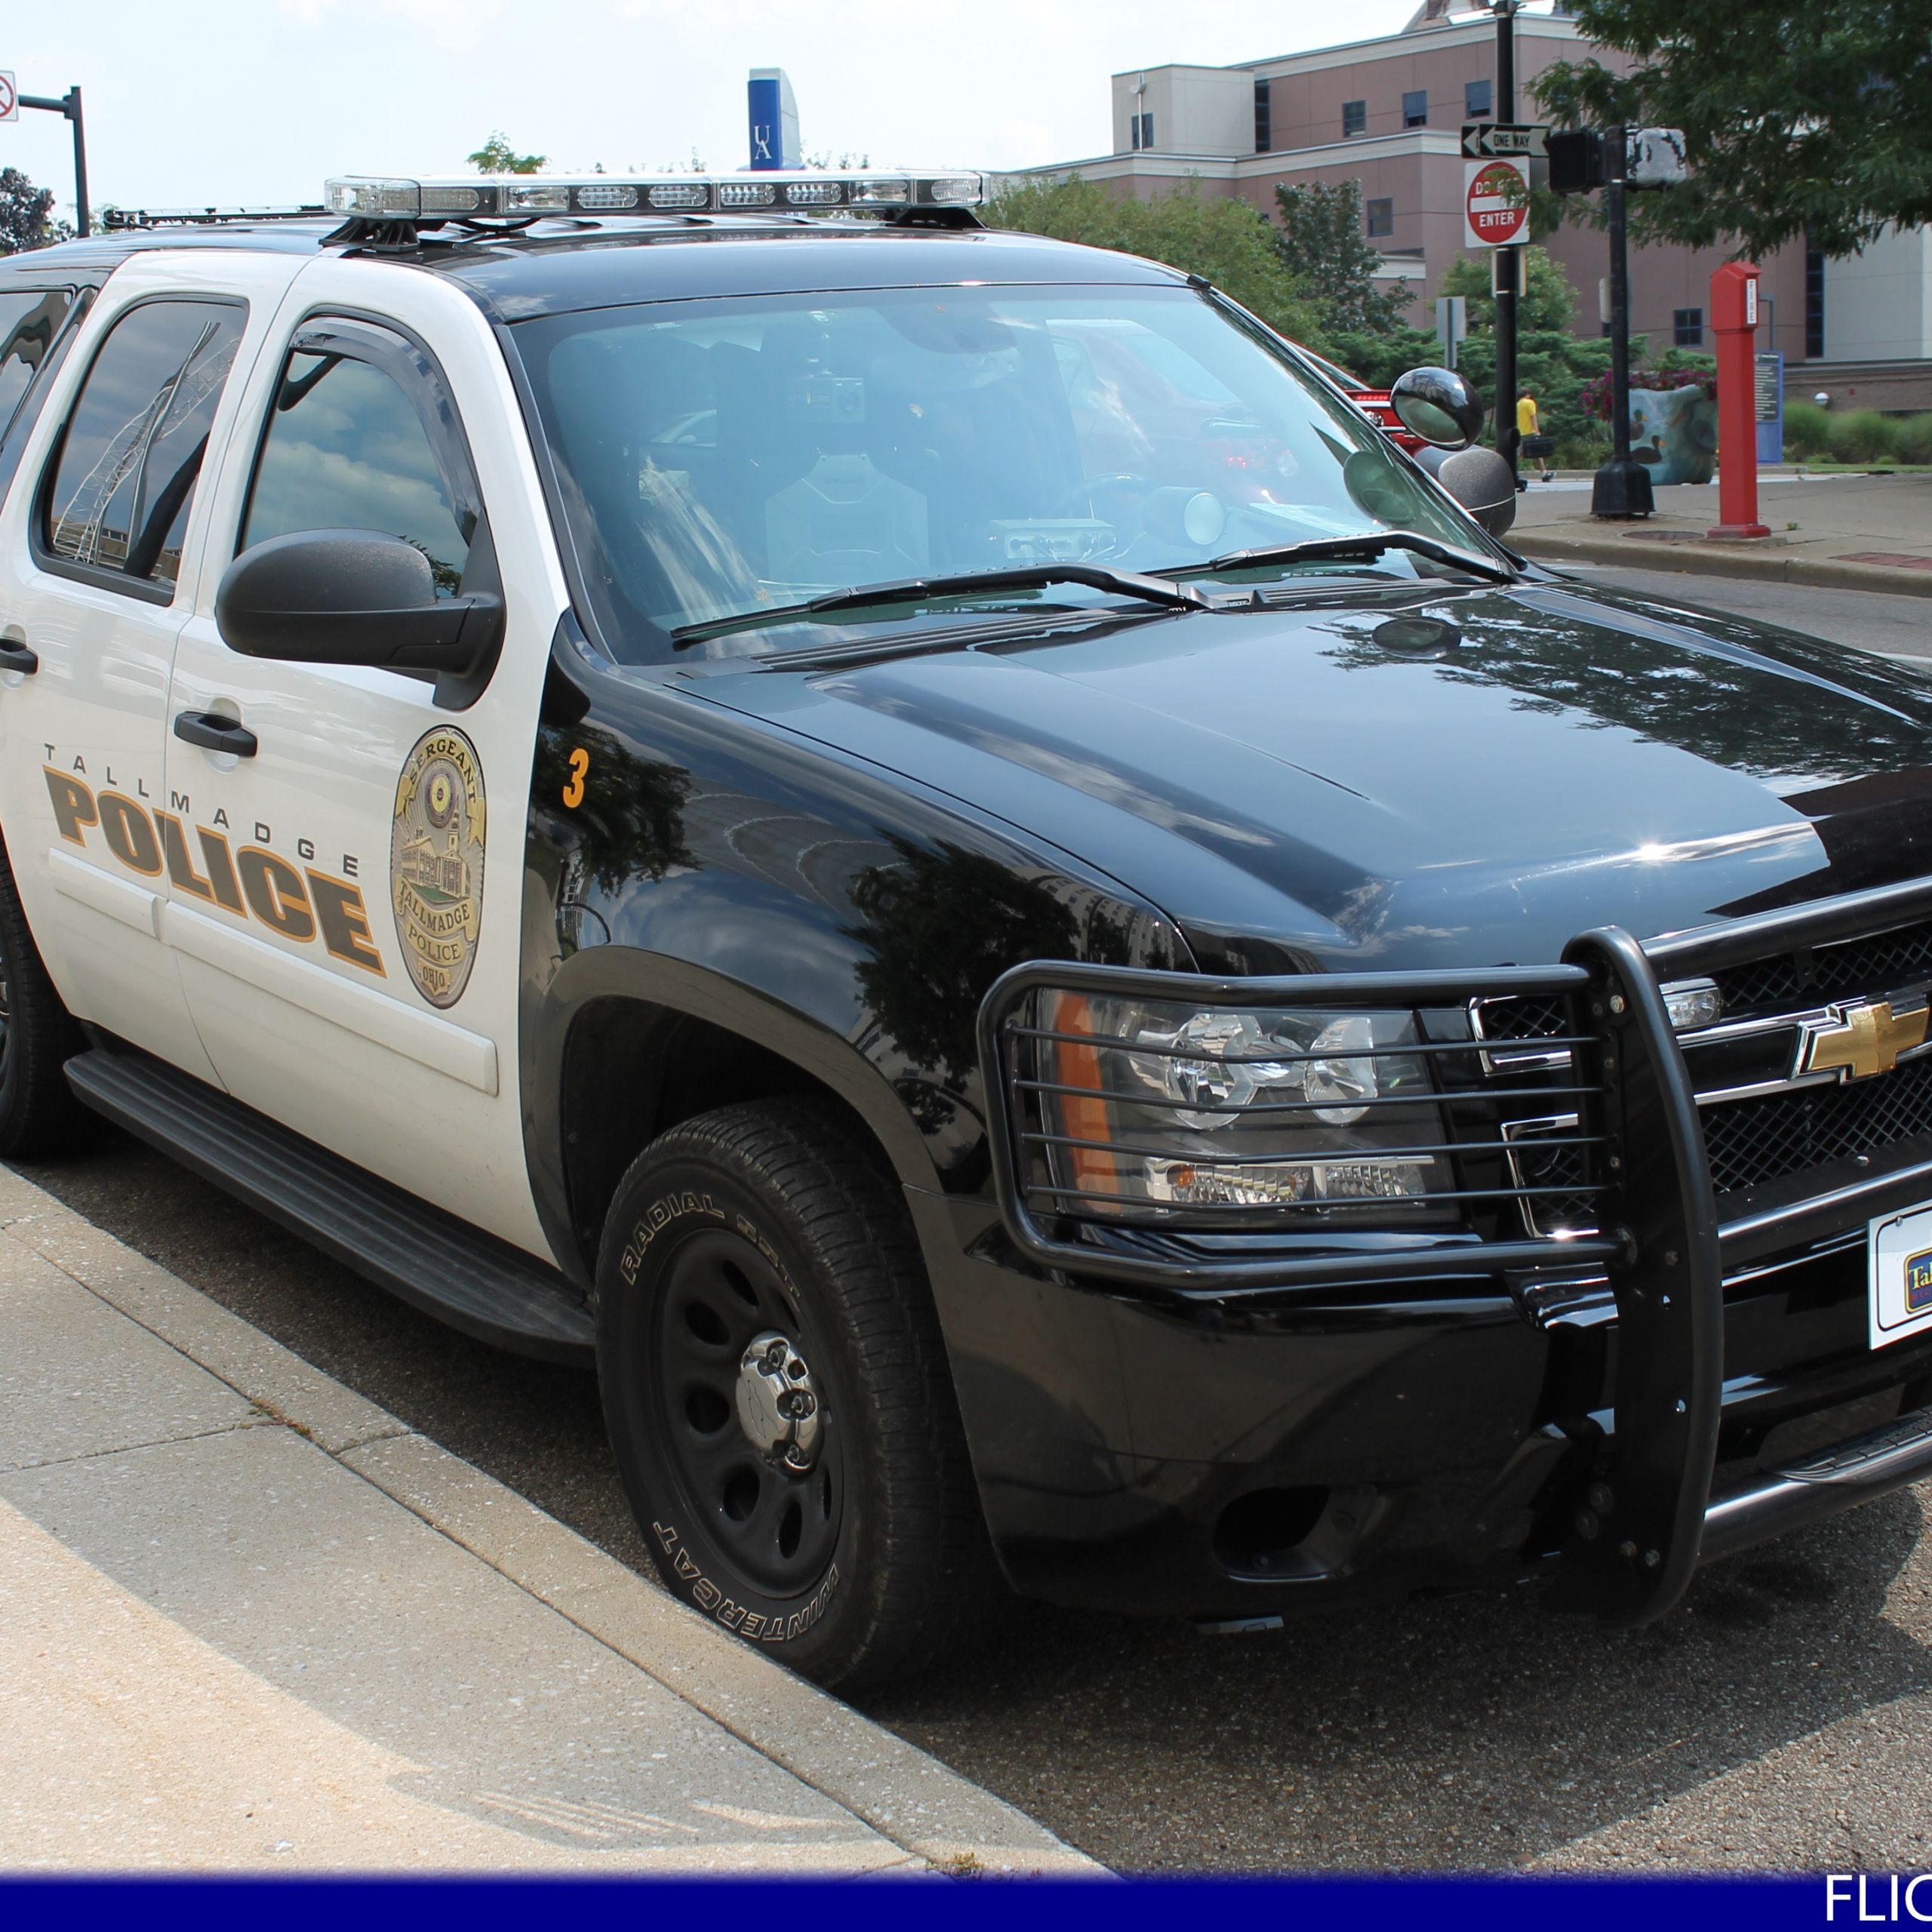 2016 Chevy Tahoe Lovely File Tallmadge Ohio Police Department Chevrolet Tahoe 3